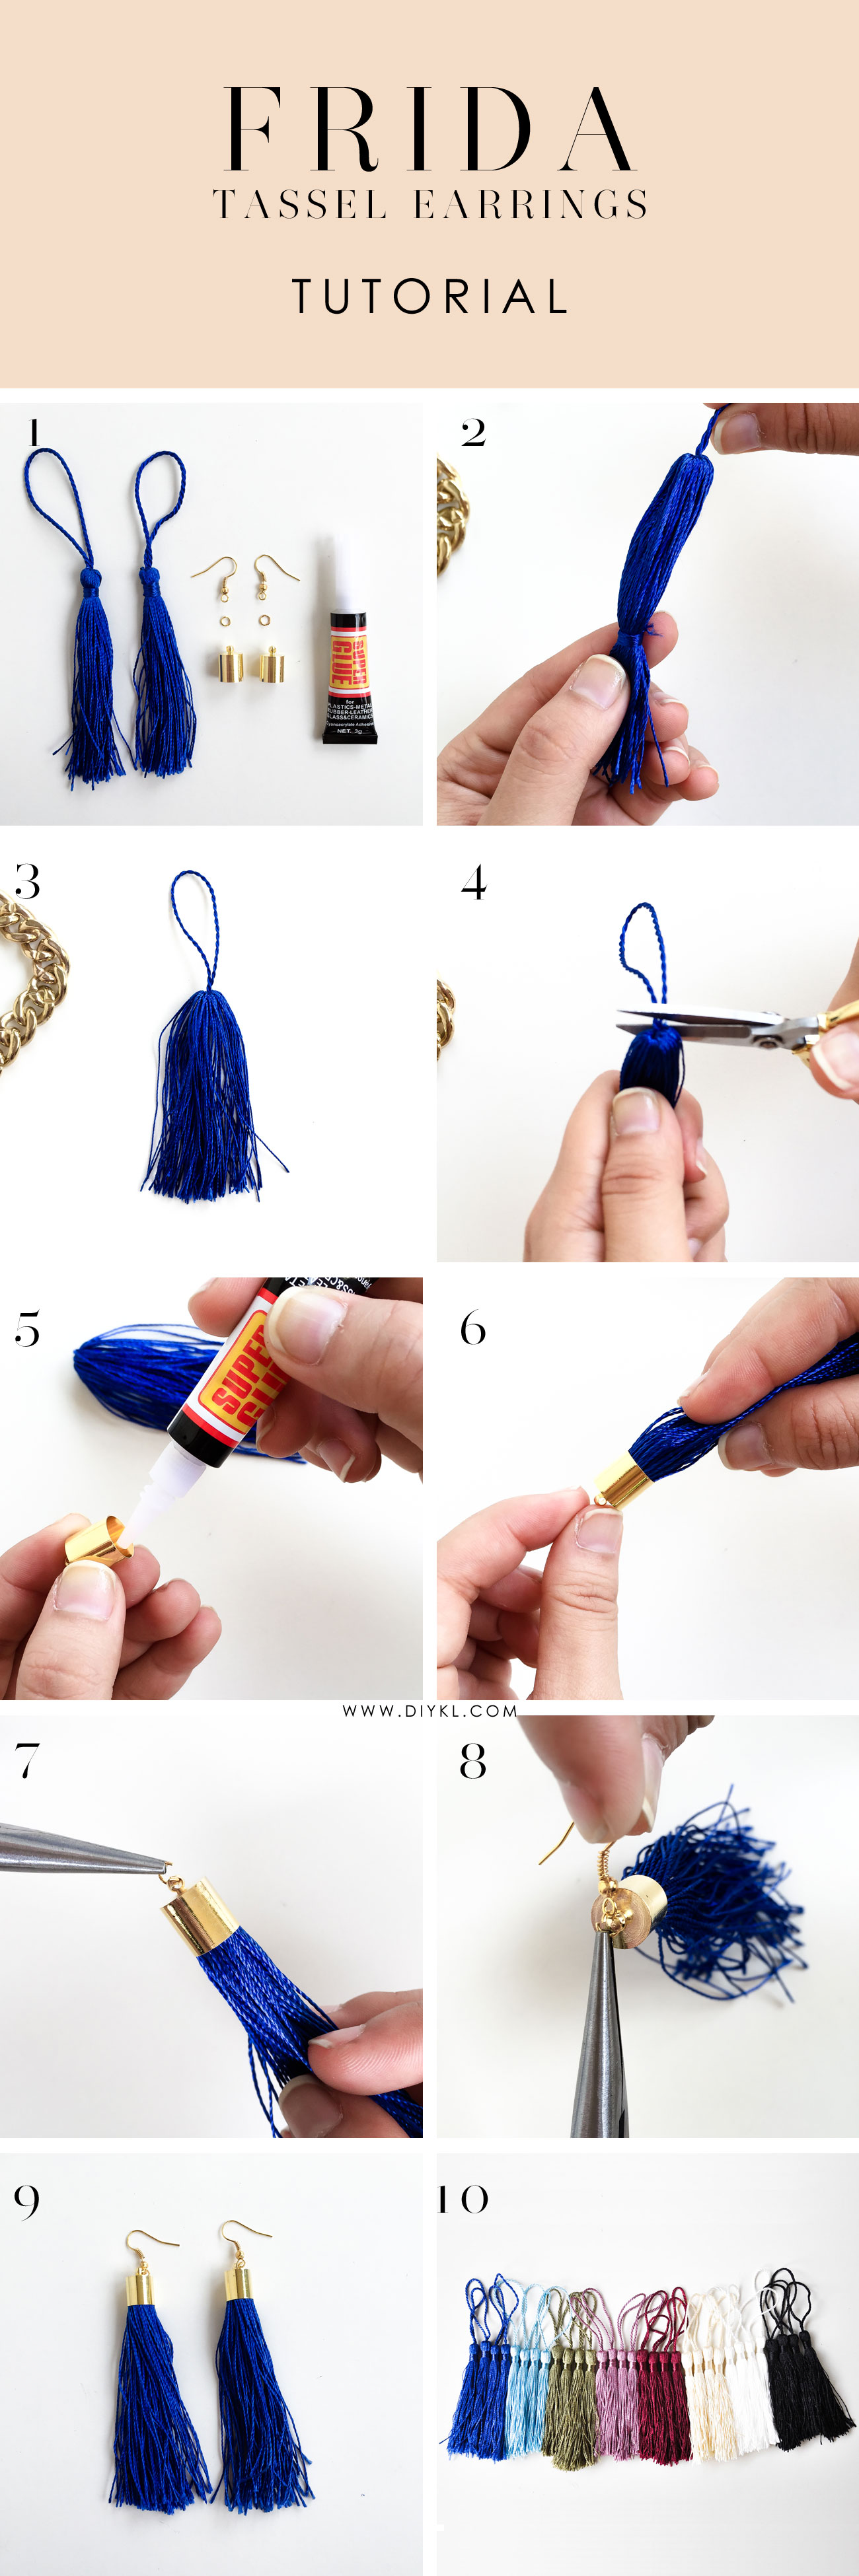 diykl FRIDA Tassel Earrings Tutorial